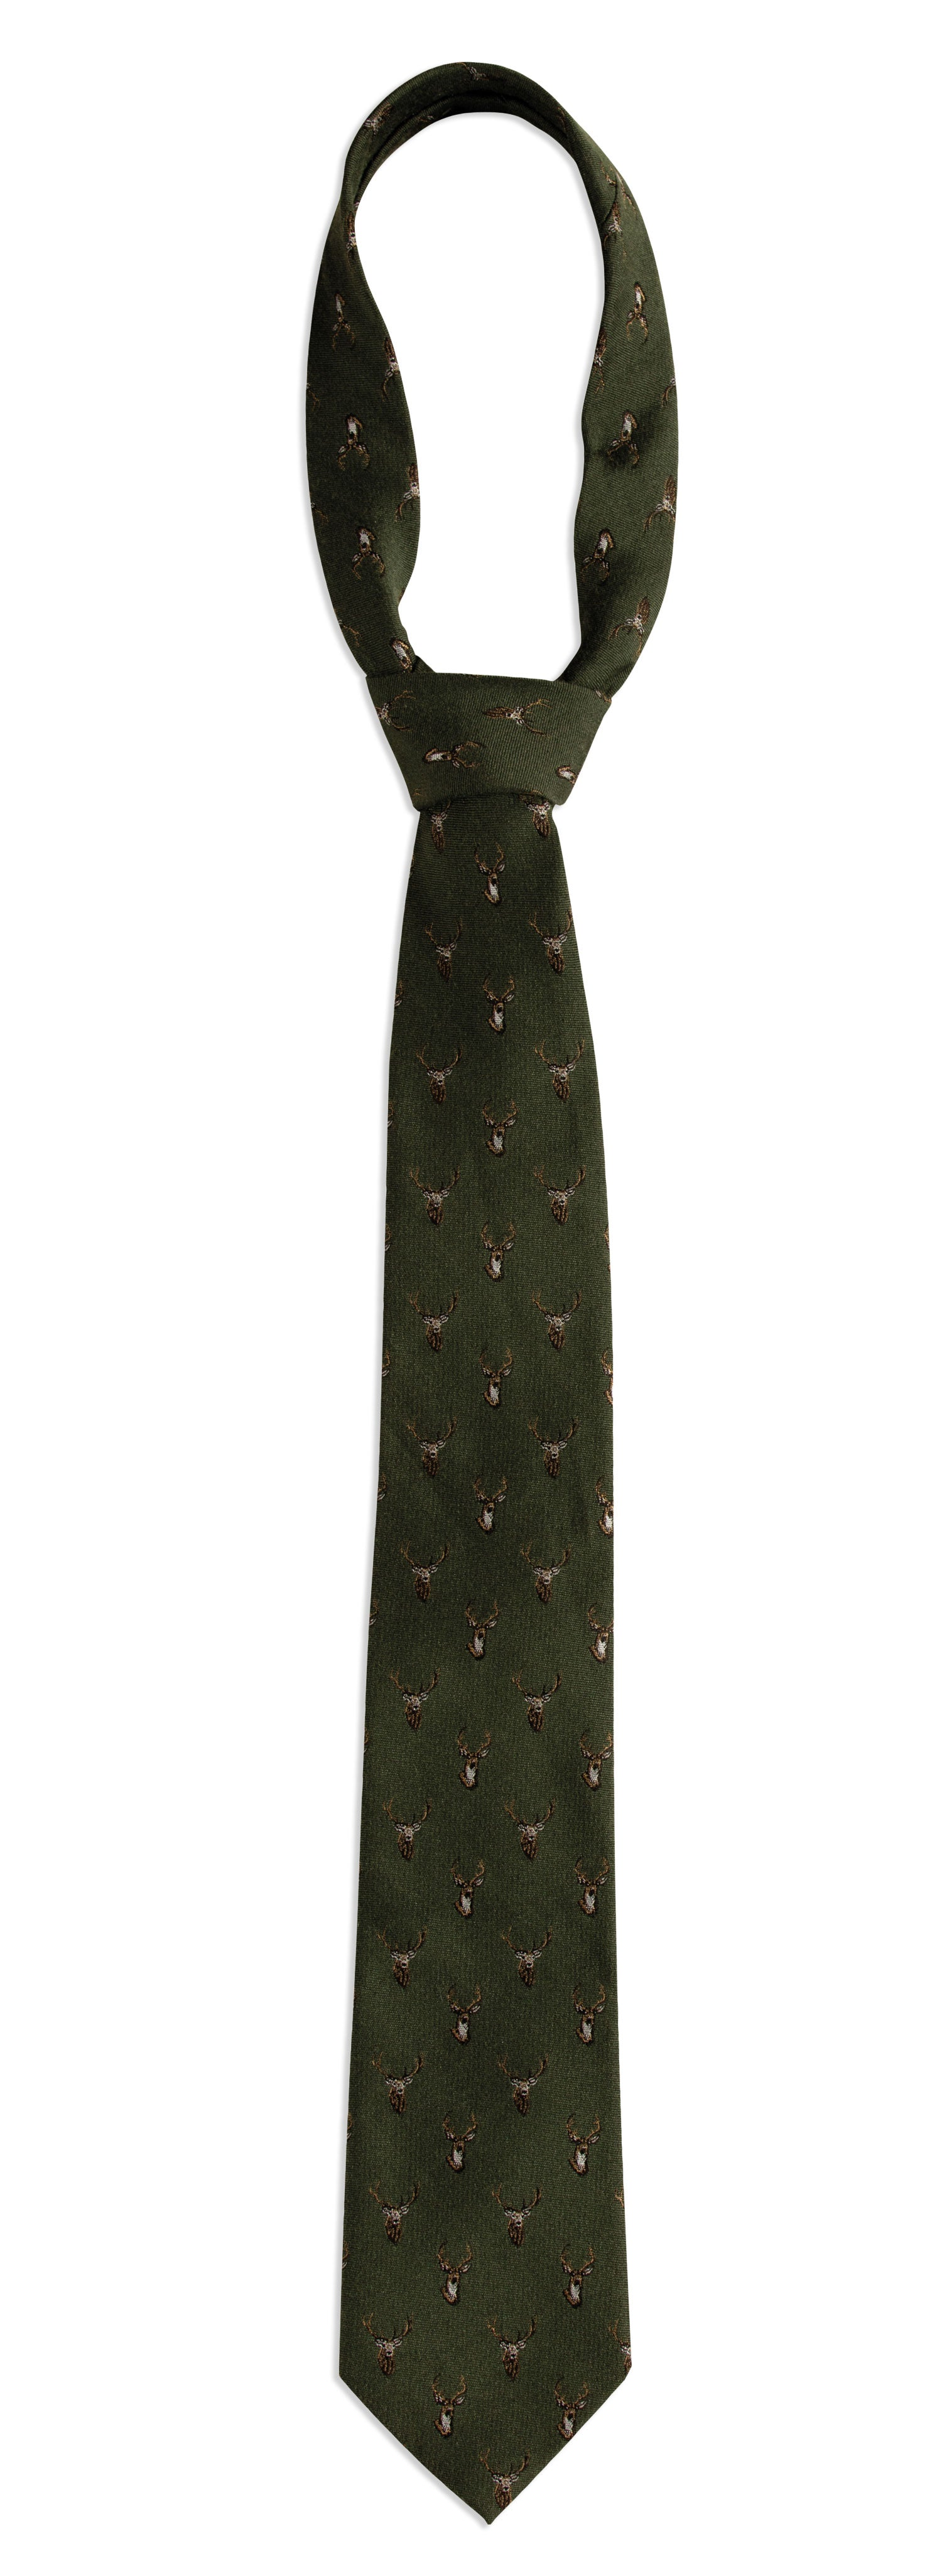 Garden Green Deerhunter Stag Silk/Wool Tie